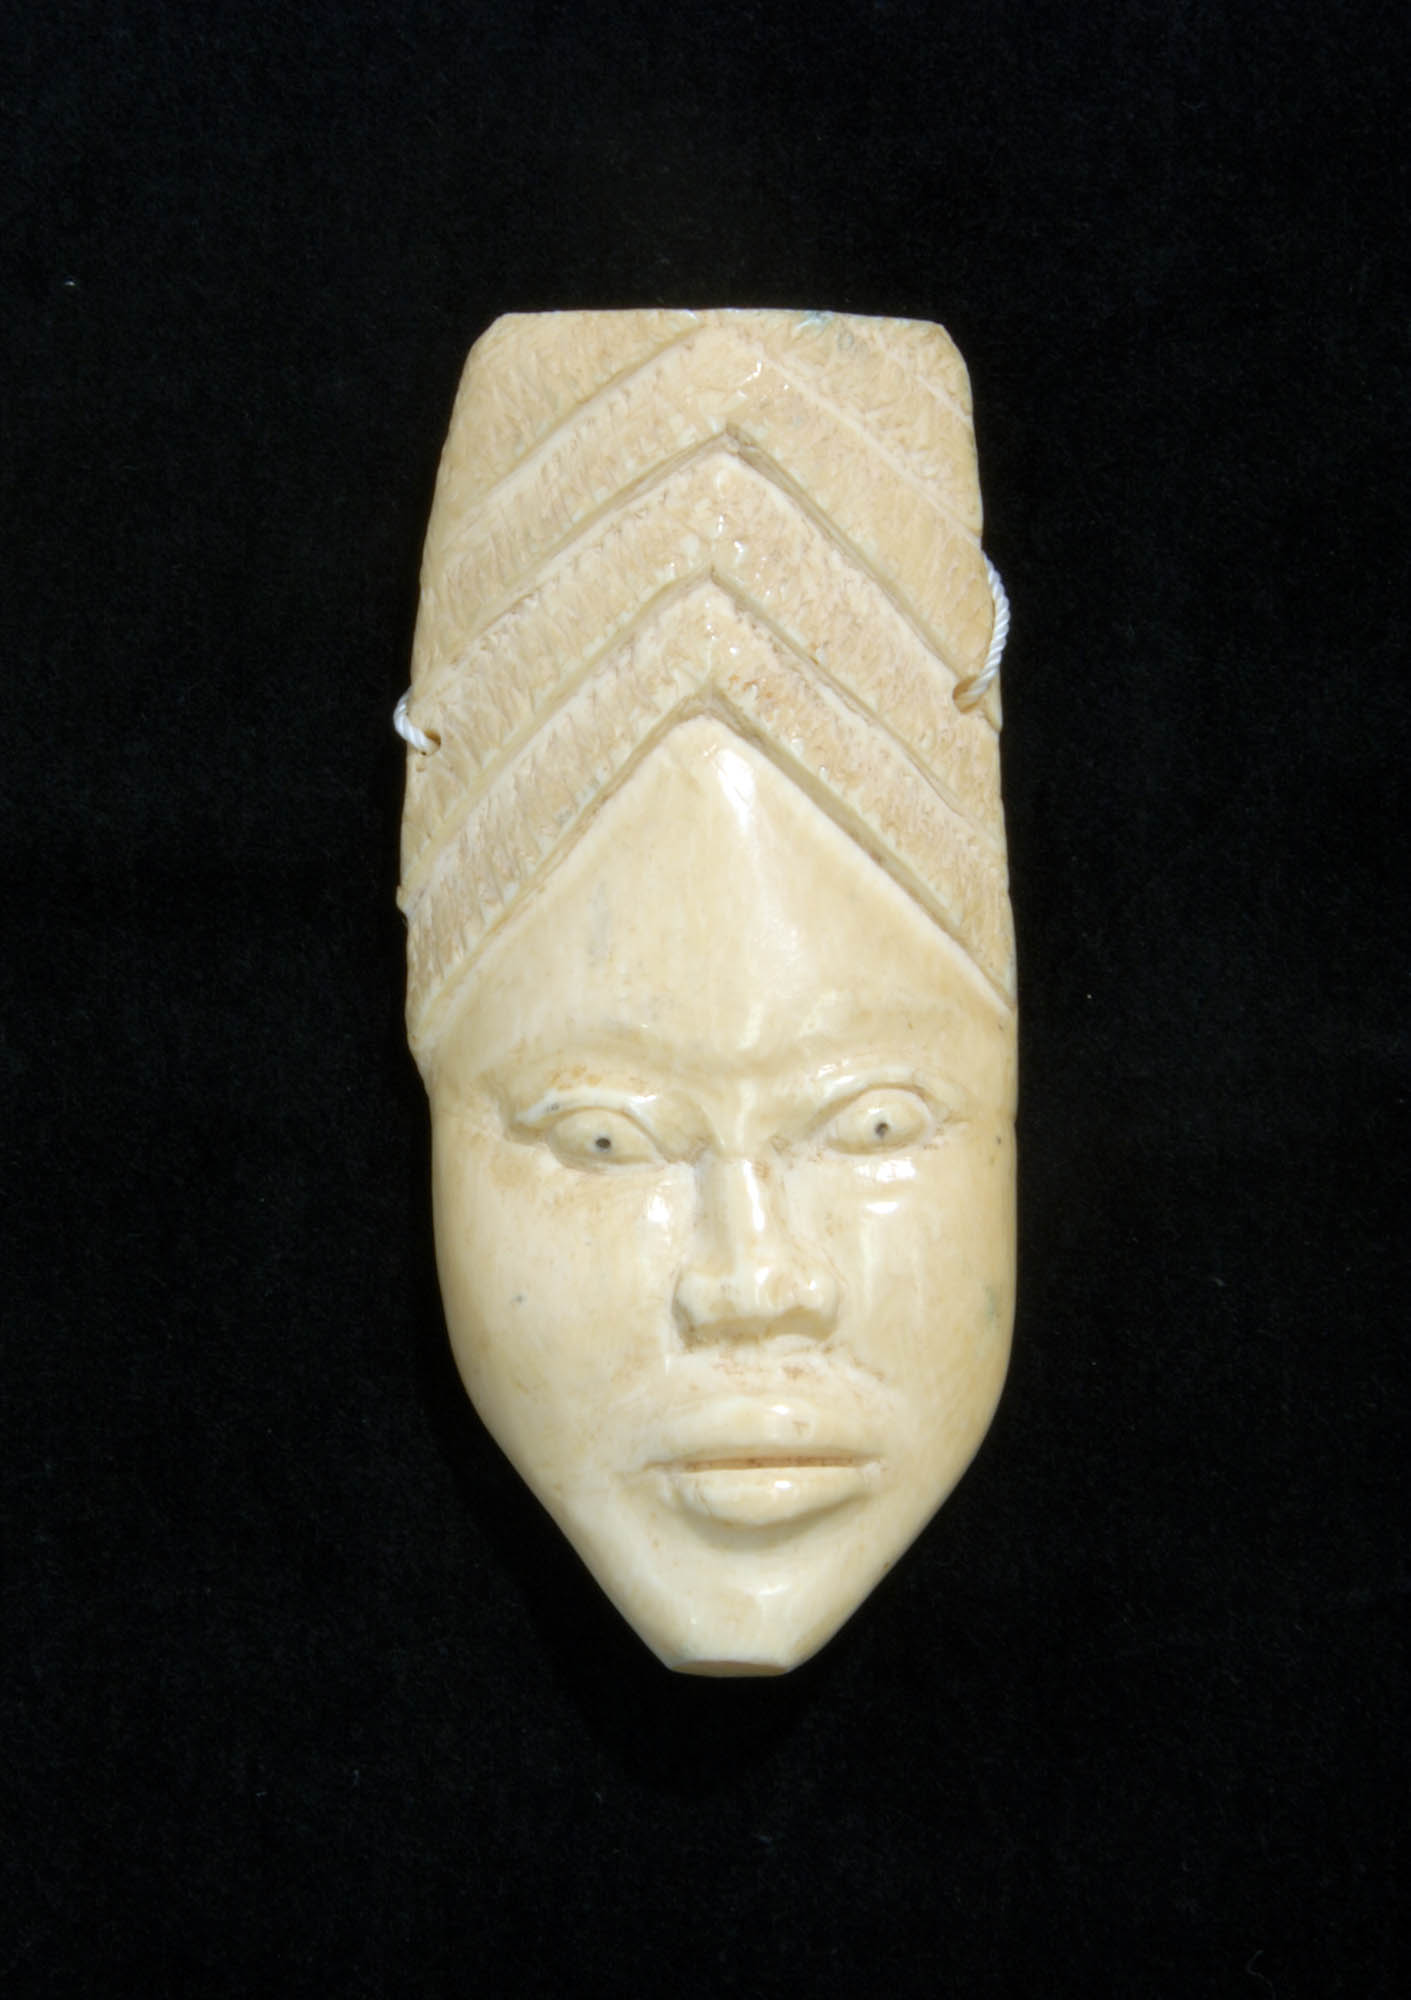 Ivory ornamental face mask